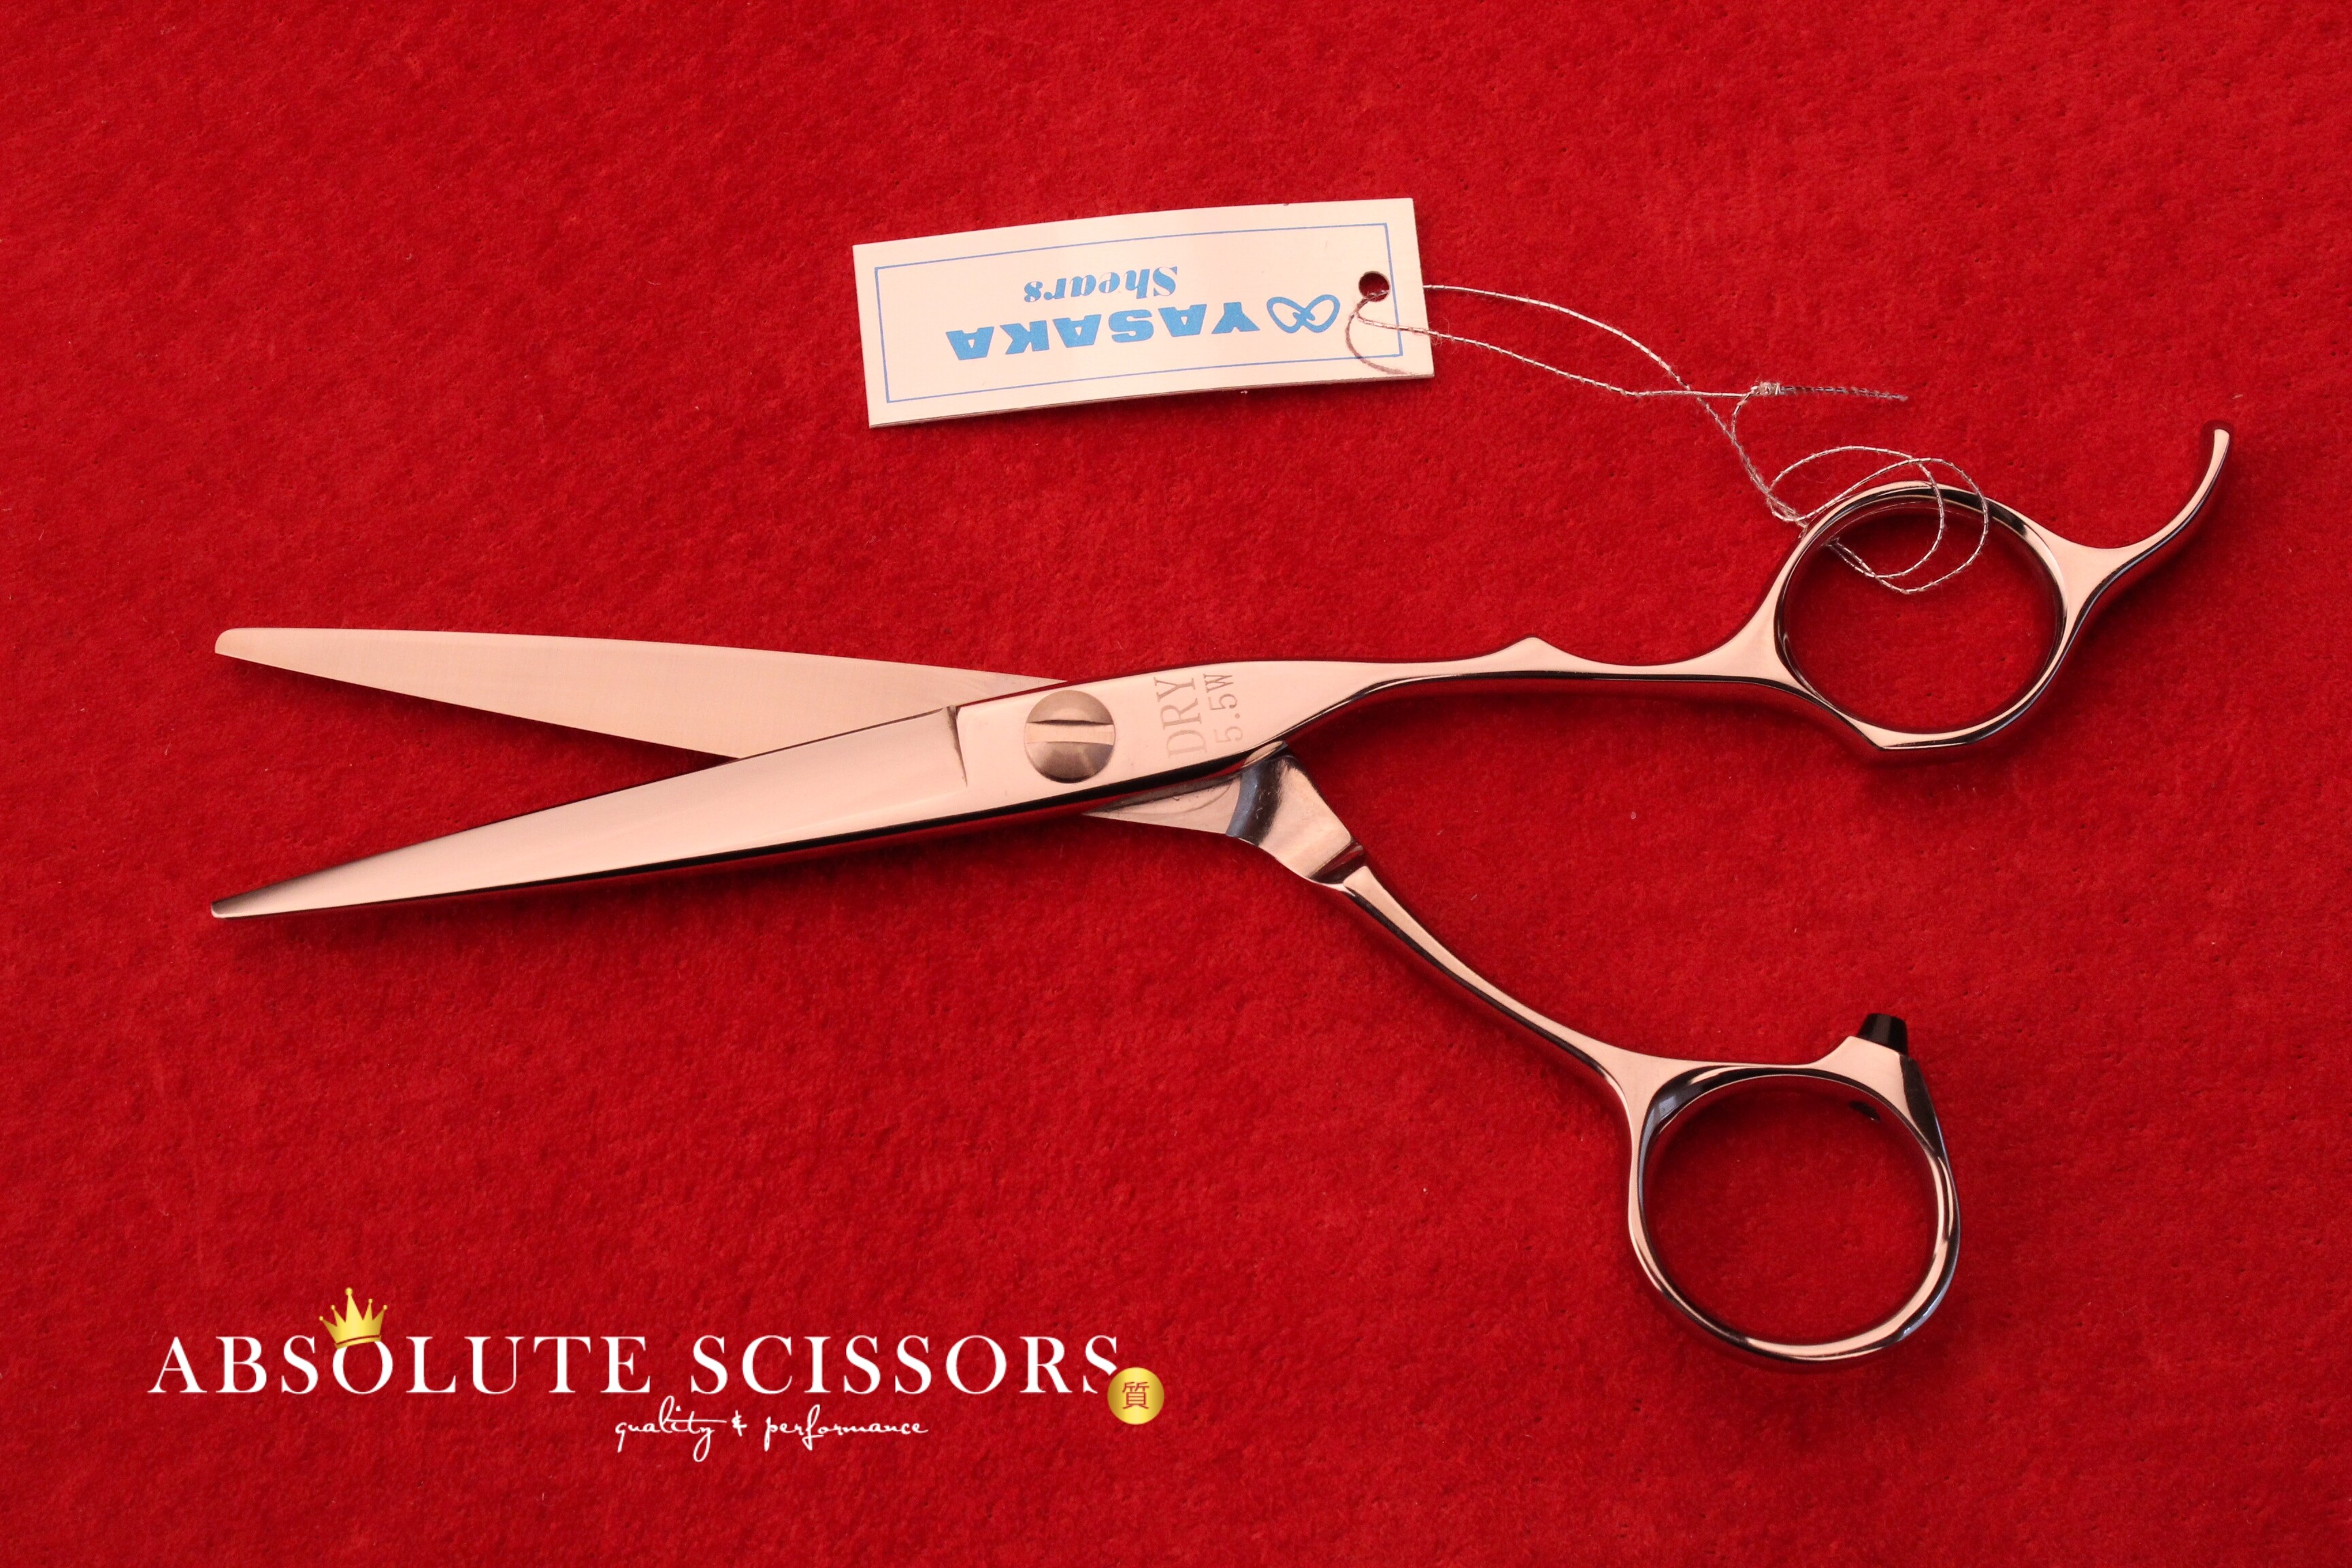 hair scissors size 55